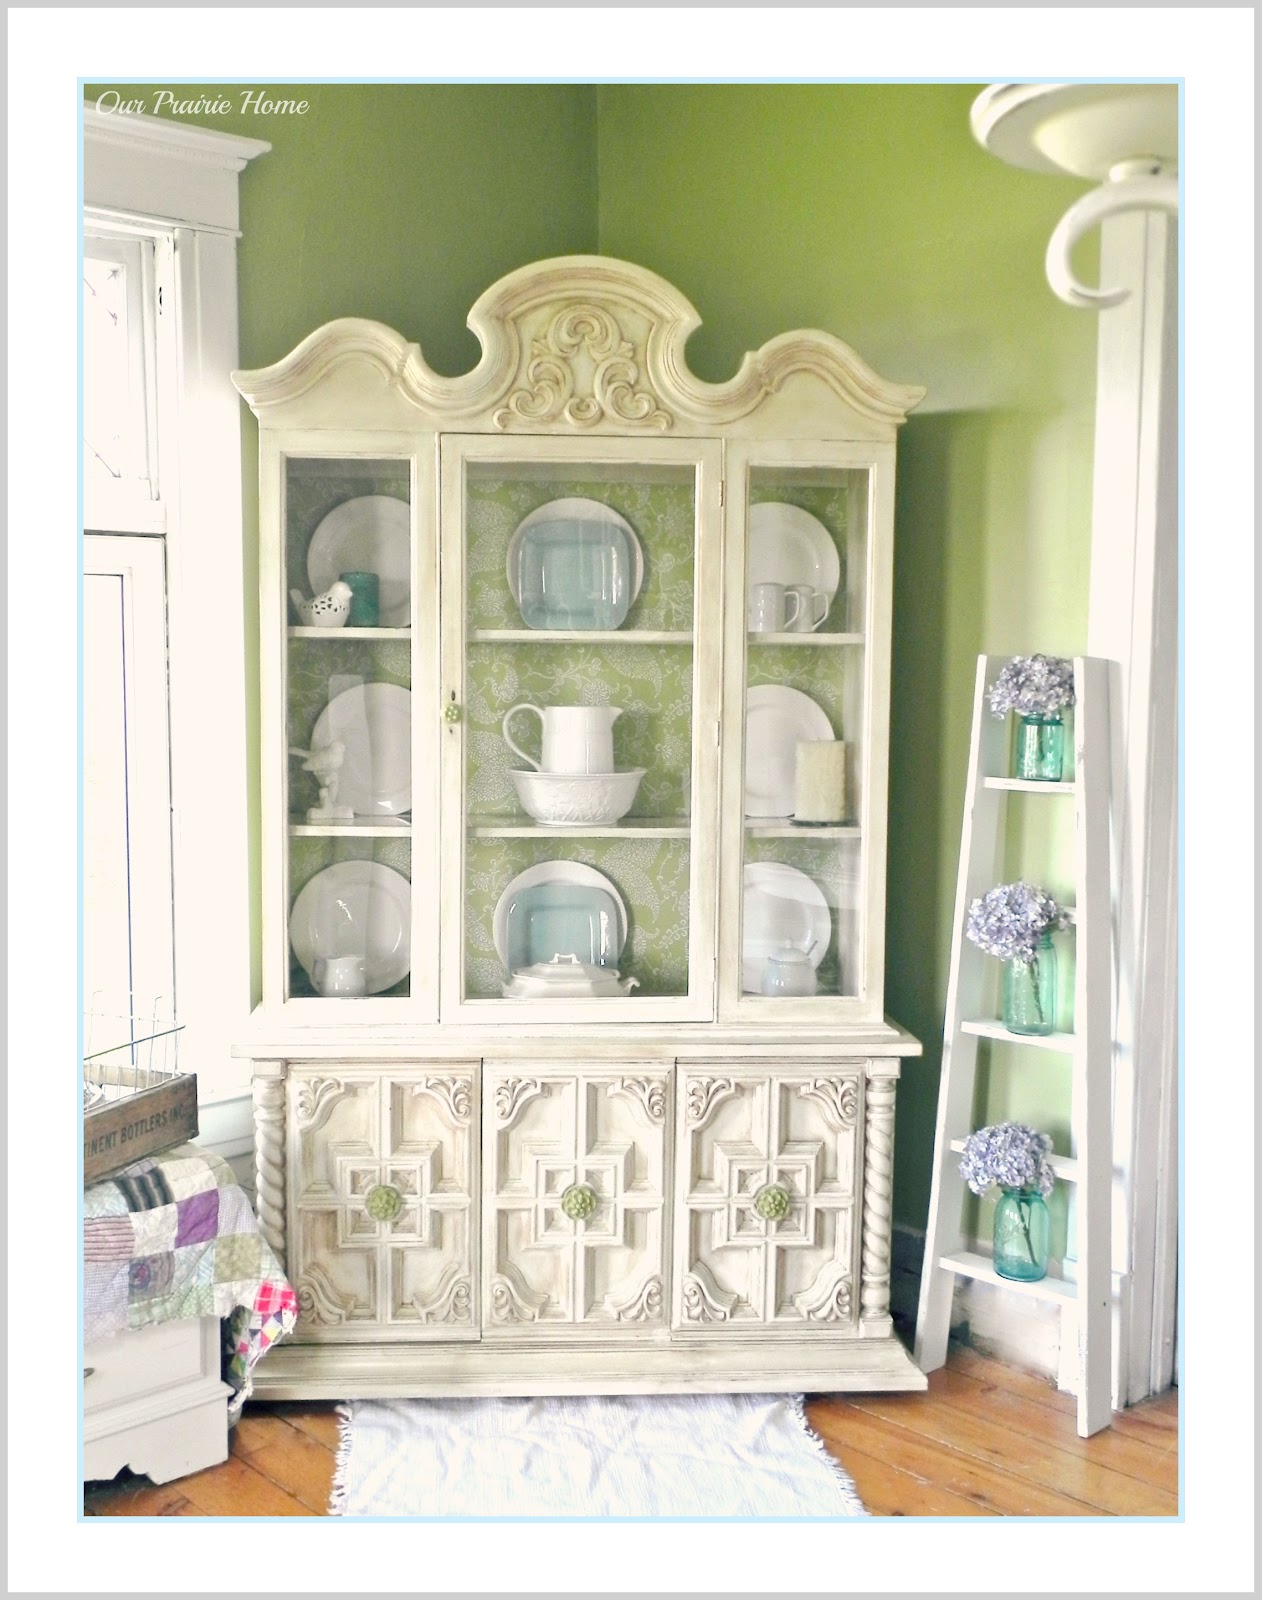 cece china pin of designed hutch caldwell painted cabinet s three birds philadelphia parchment clayton nc little by